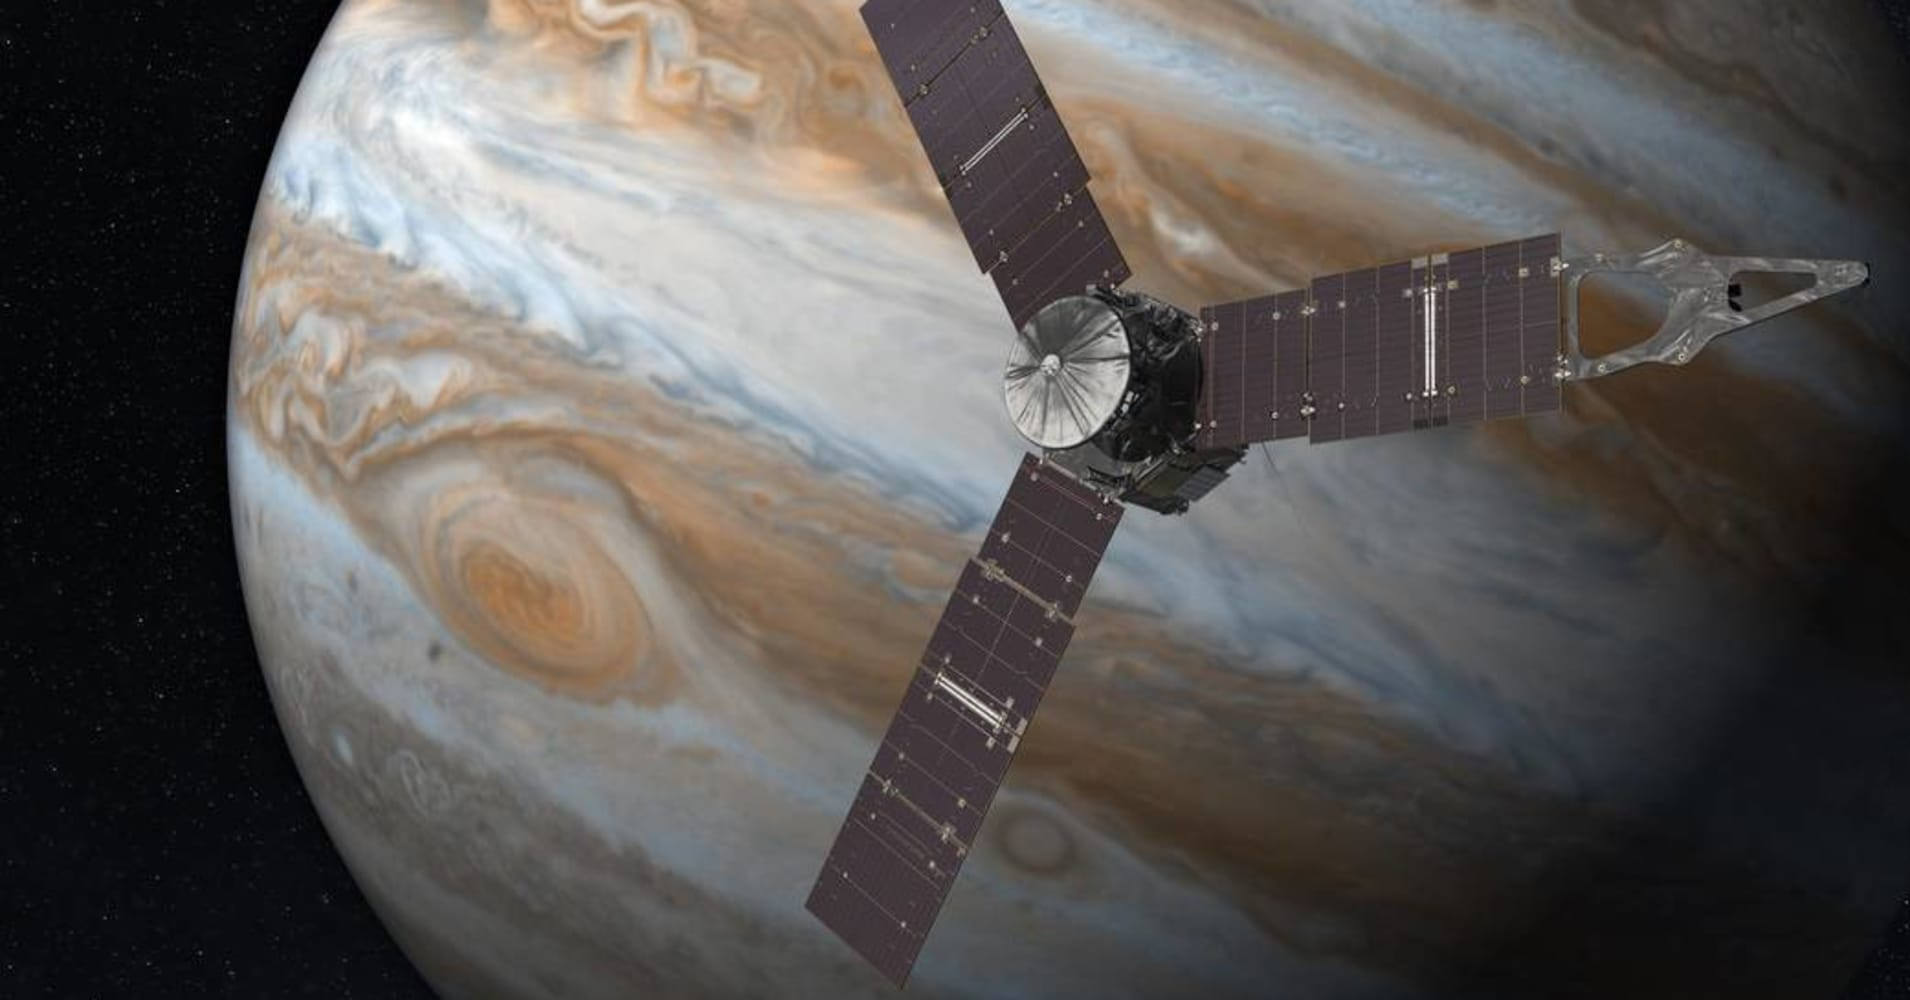 nasa s juno spacecraft enters jupiter s orbit after year journey